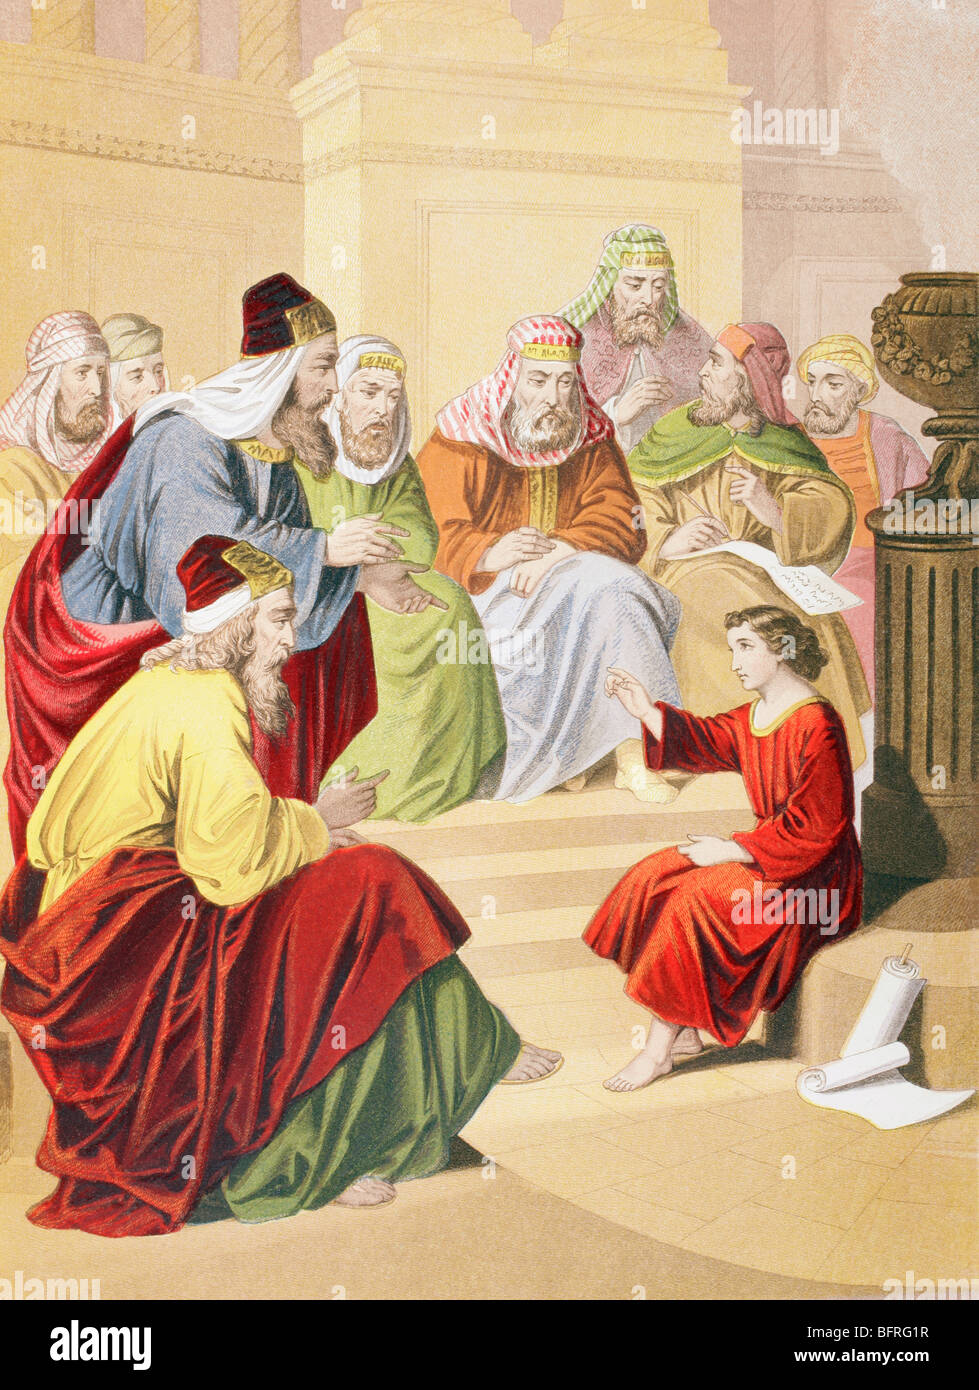 The boy Jesus debating with priests and teachers in the temple - Stock Image